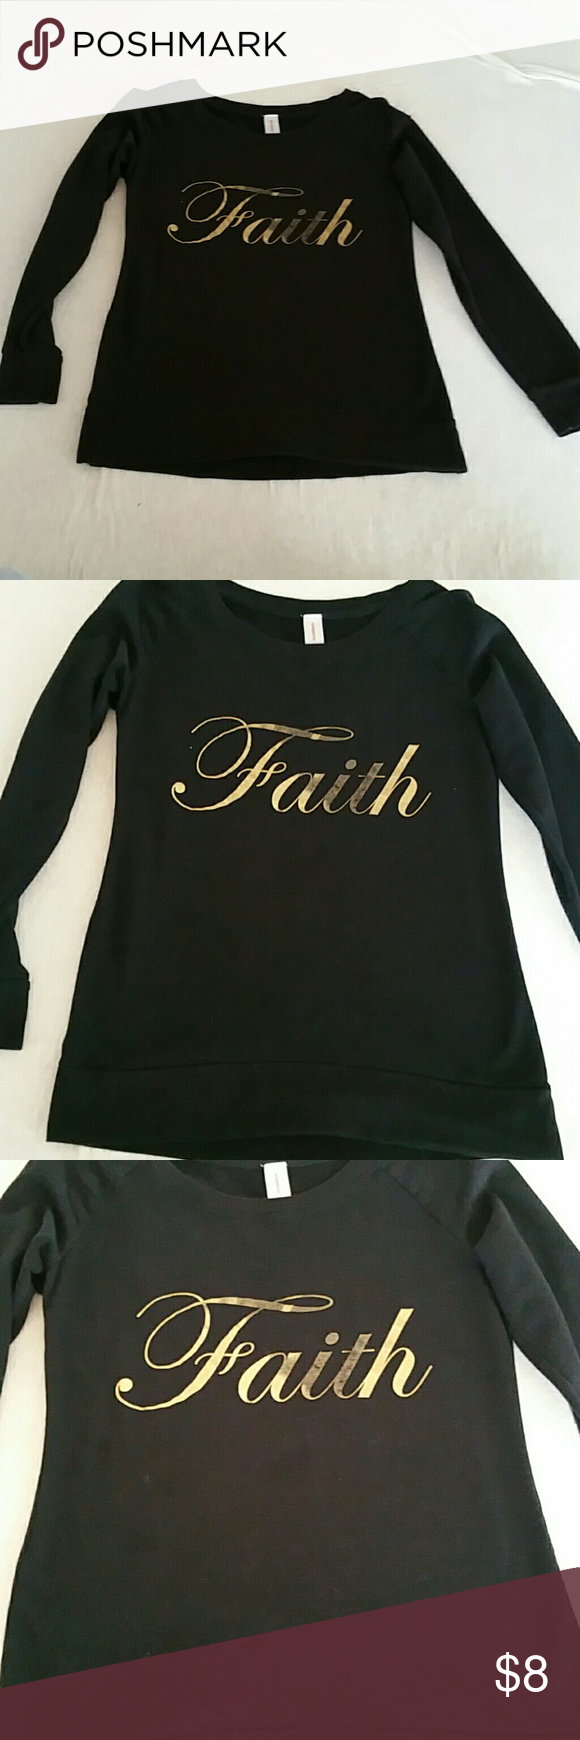 Faith Sweater Pull over sweater.  Black and gold lettering with fade look.  Soft cotton.  No rips tears or stains.  Back is solid black. Sweaters